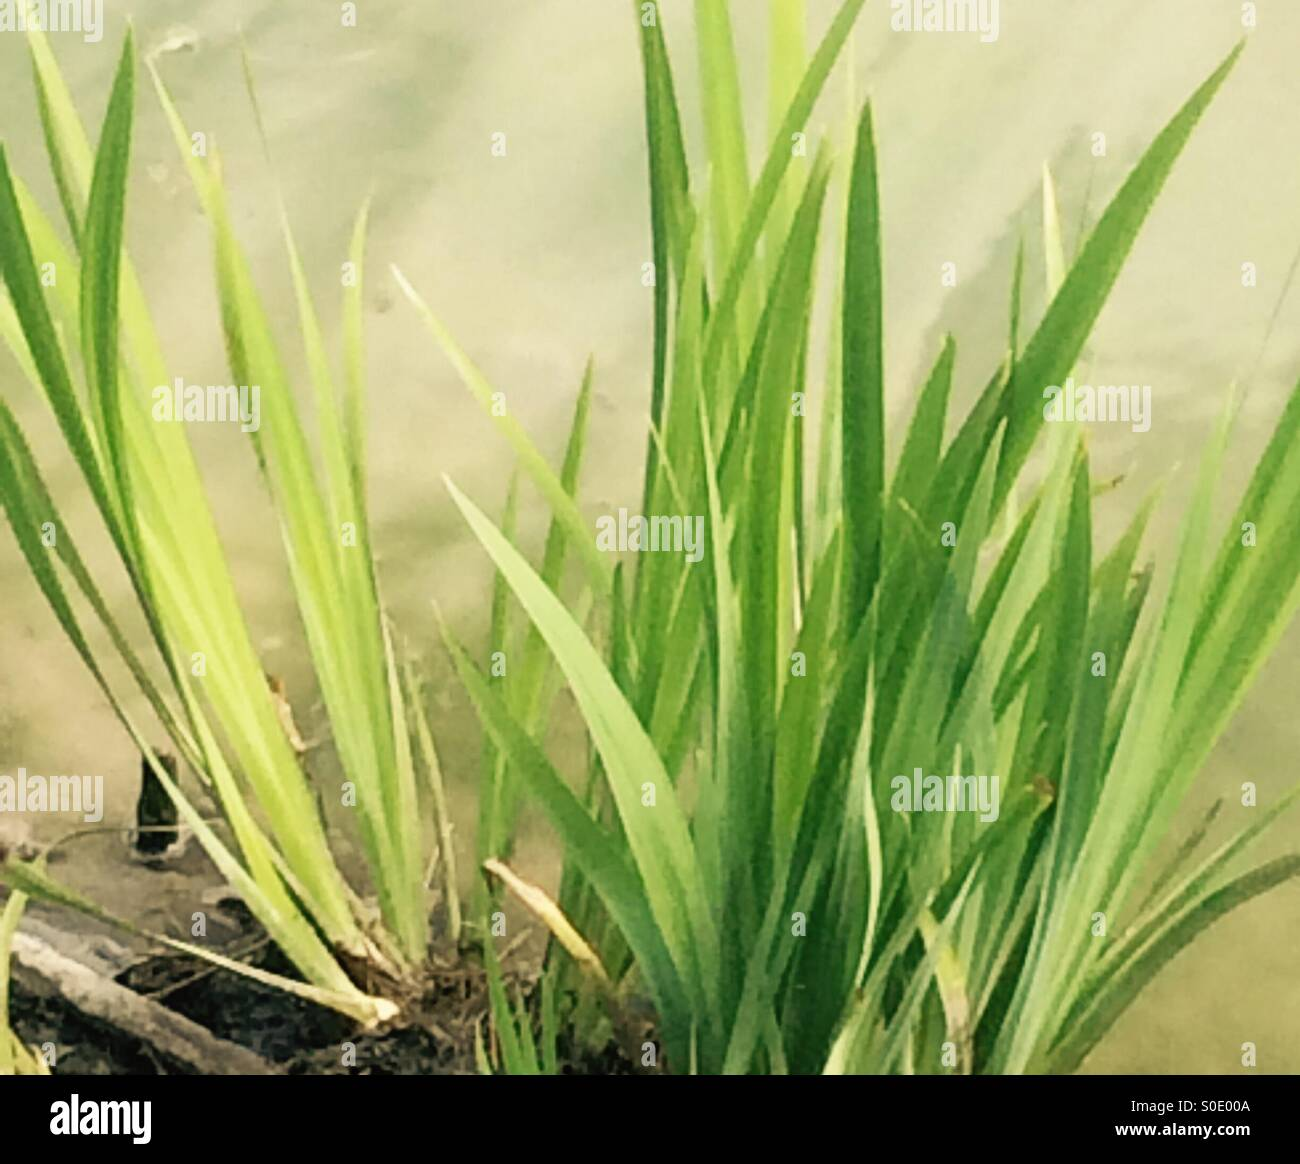 Blades of grass growing at the edge of the pond - Stock Image